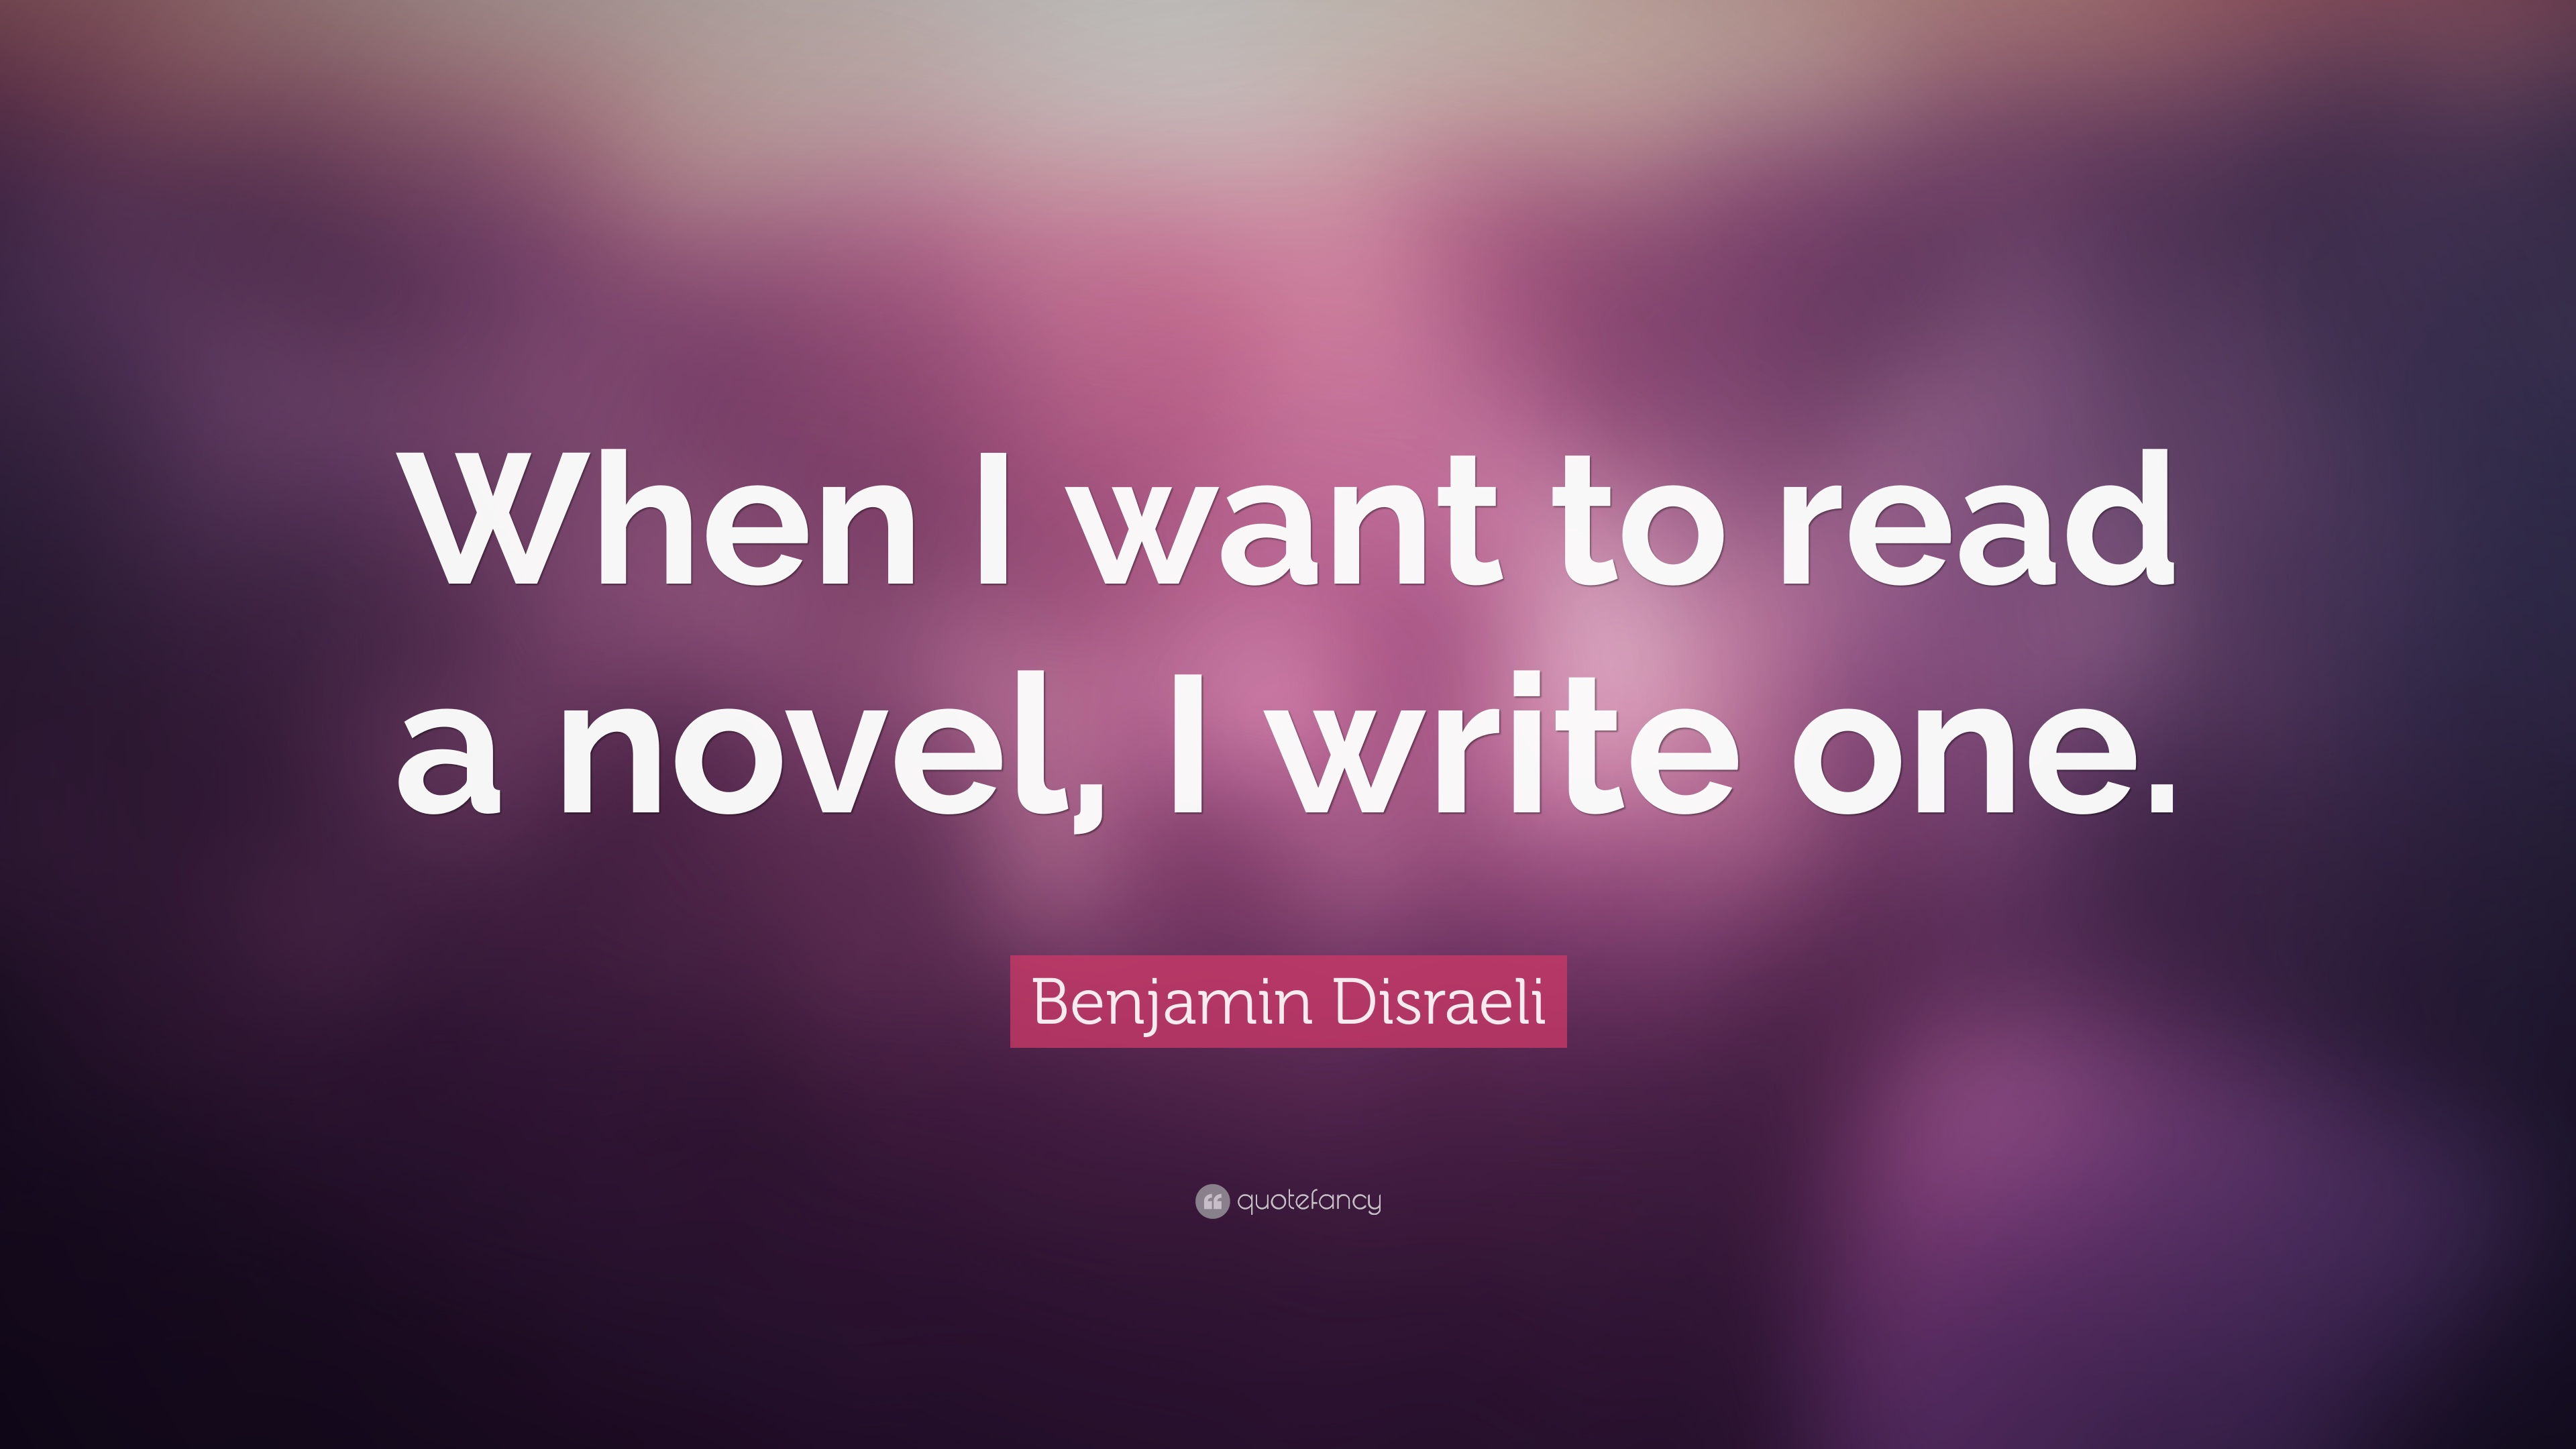 I want to write a novel